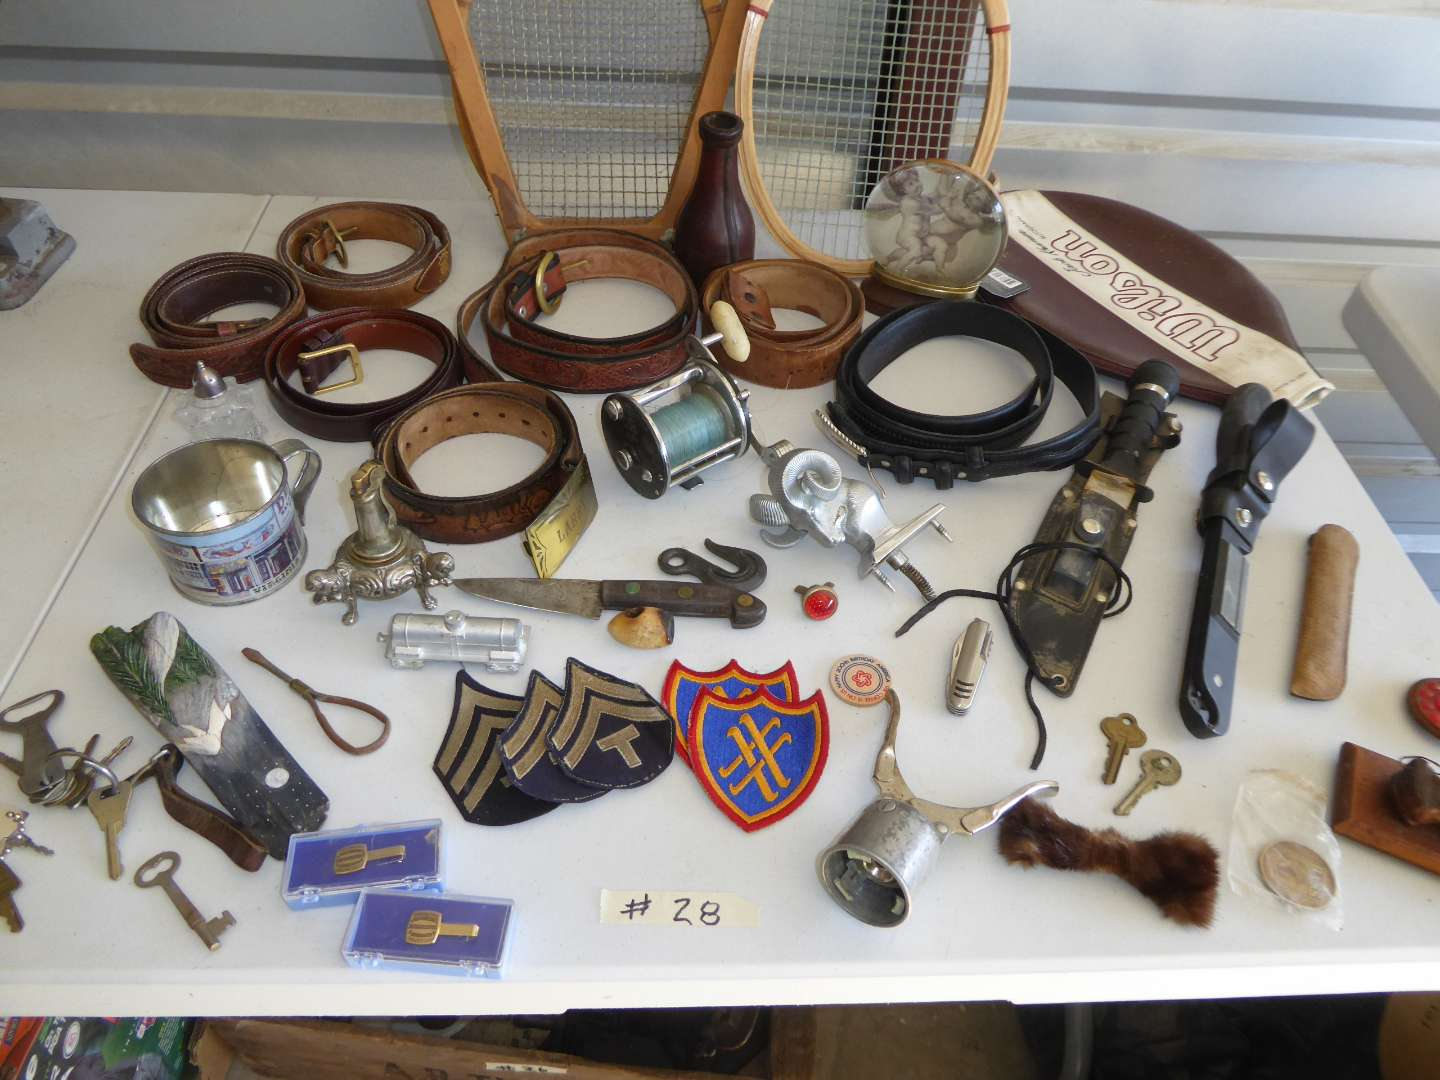 Lot # 28 - Belts, Patches Knives & Other Collectibles  (main image)